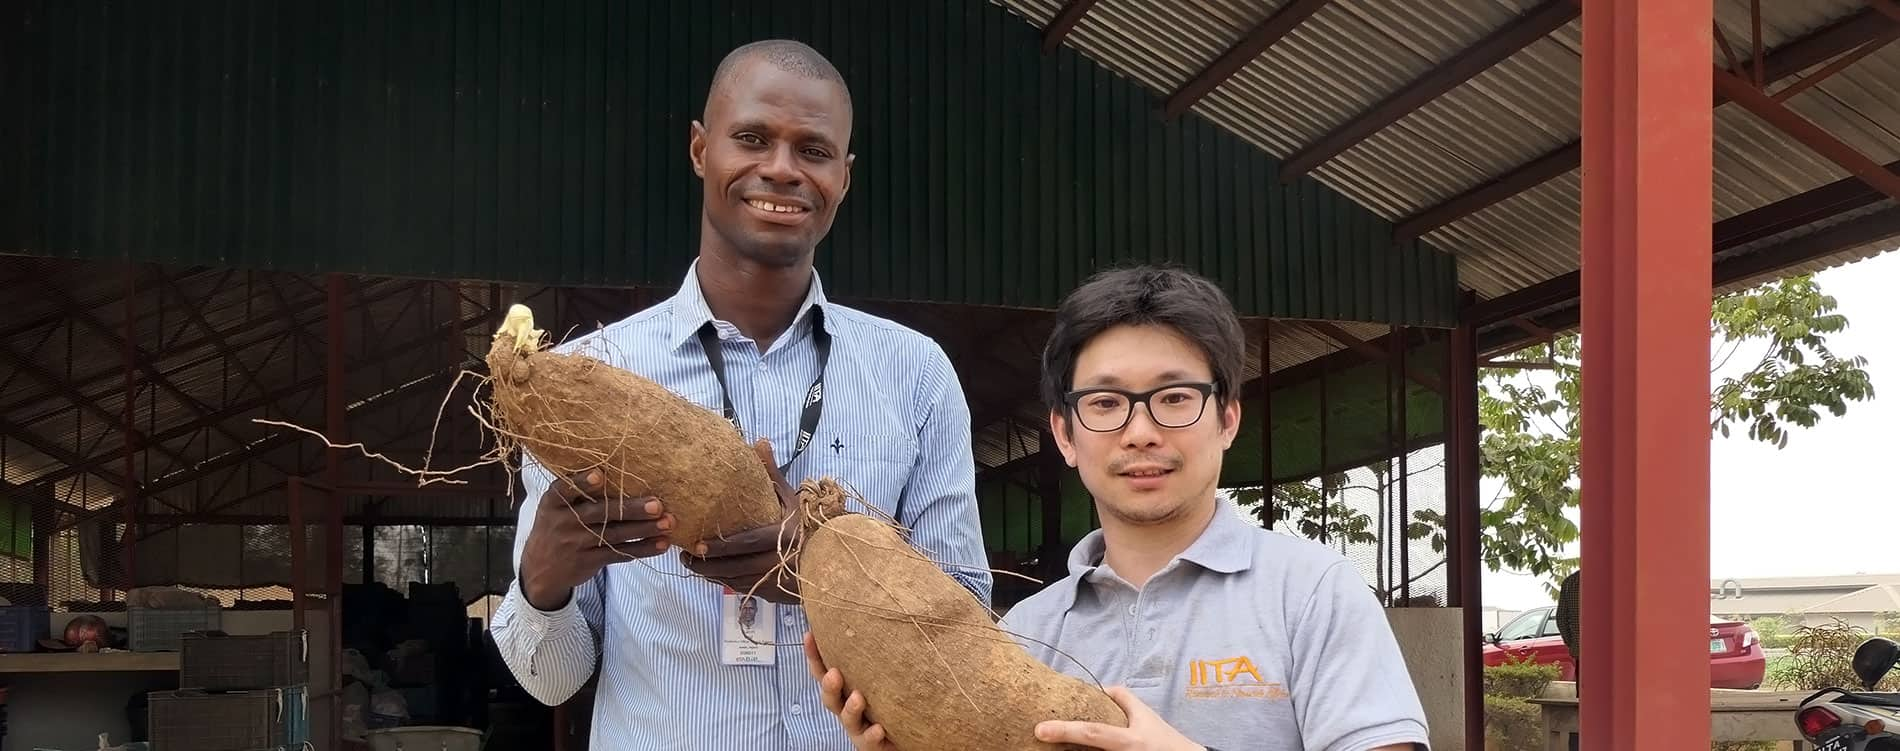 IITA BIP team sets new production per hectare record for yam farmers in Nigeria